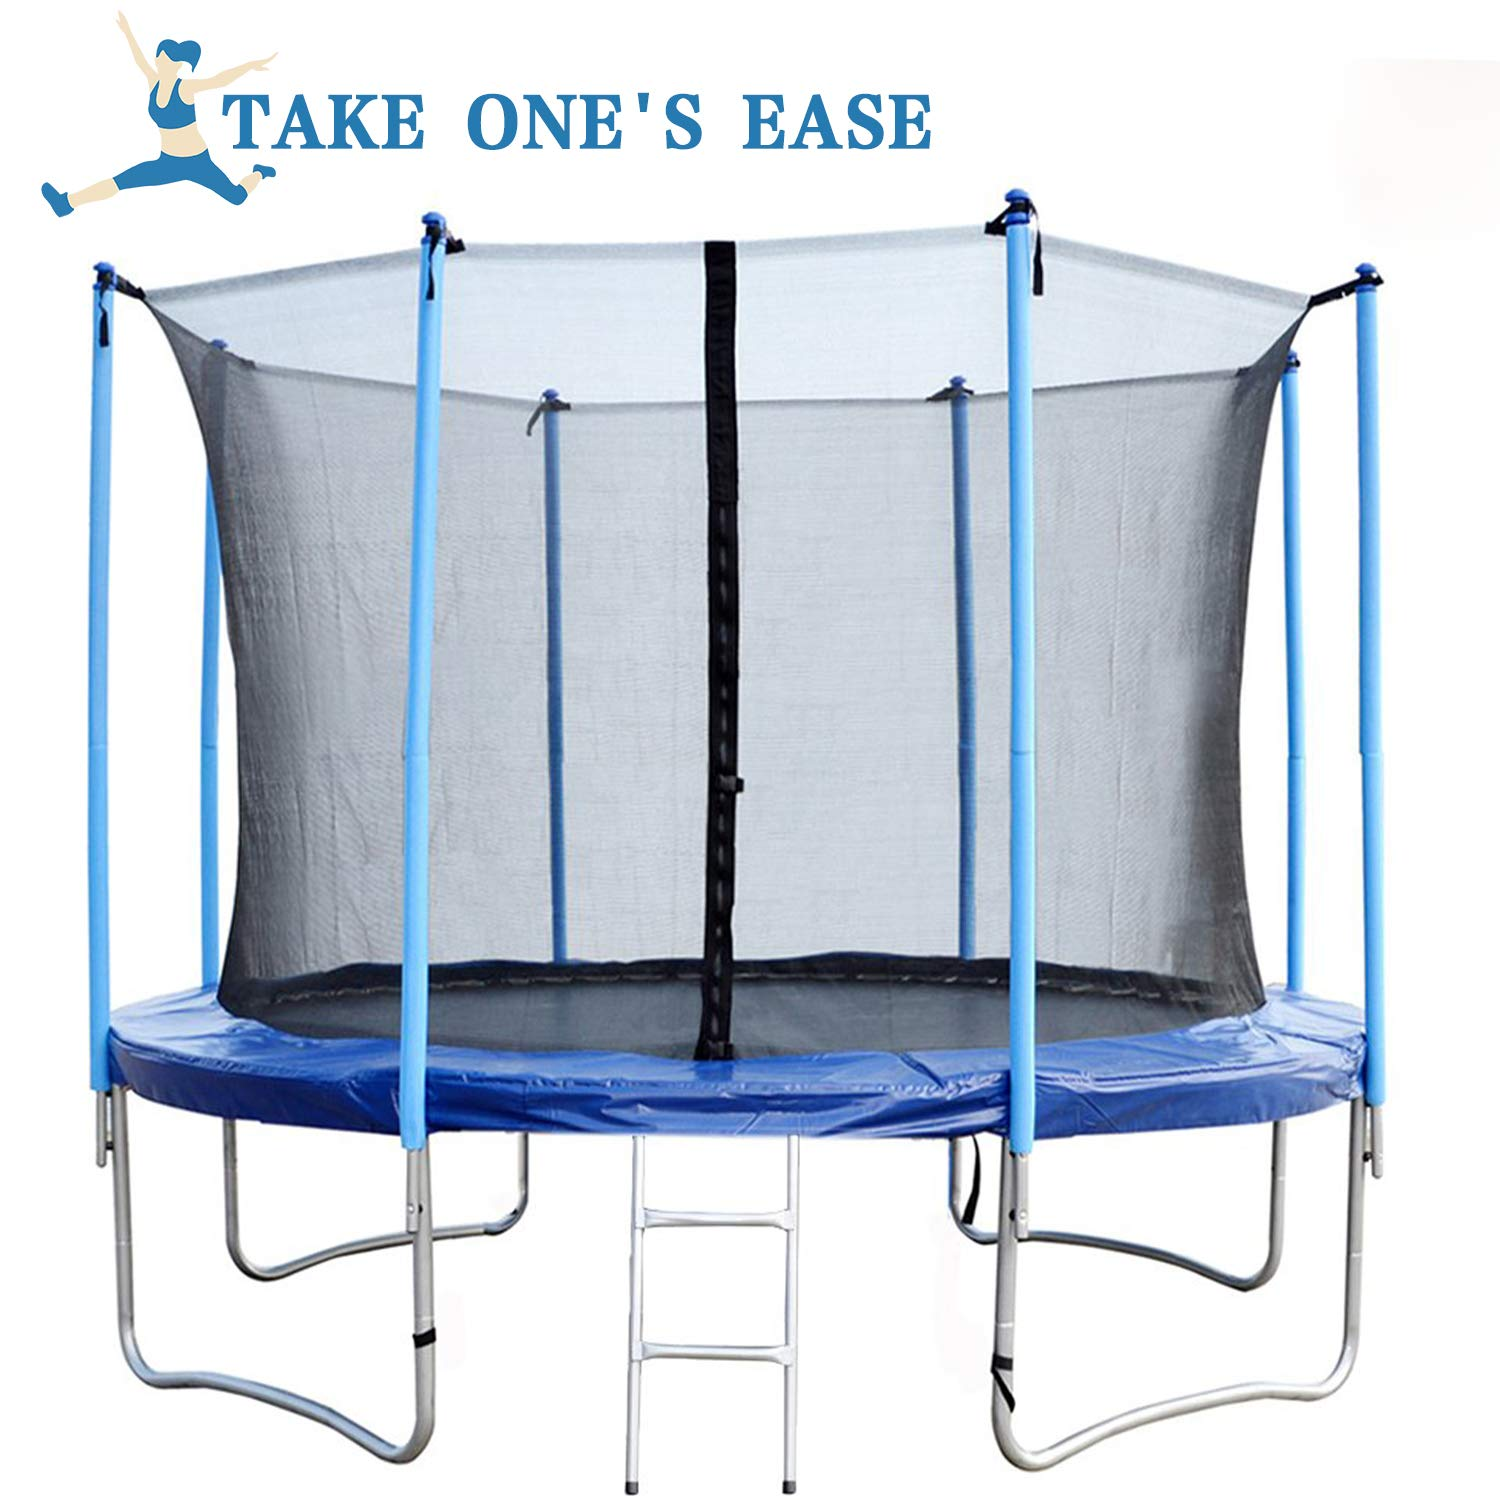 BestMassage Trampoline for Kids Fitness Trampoline with Safety Enclosure Net Ladder Jumping Mat 10/12/14/ FT (14FT) by BestMassage